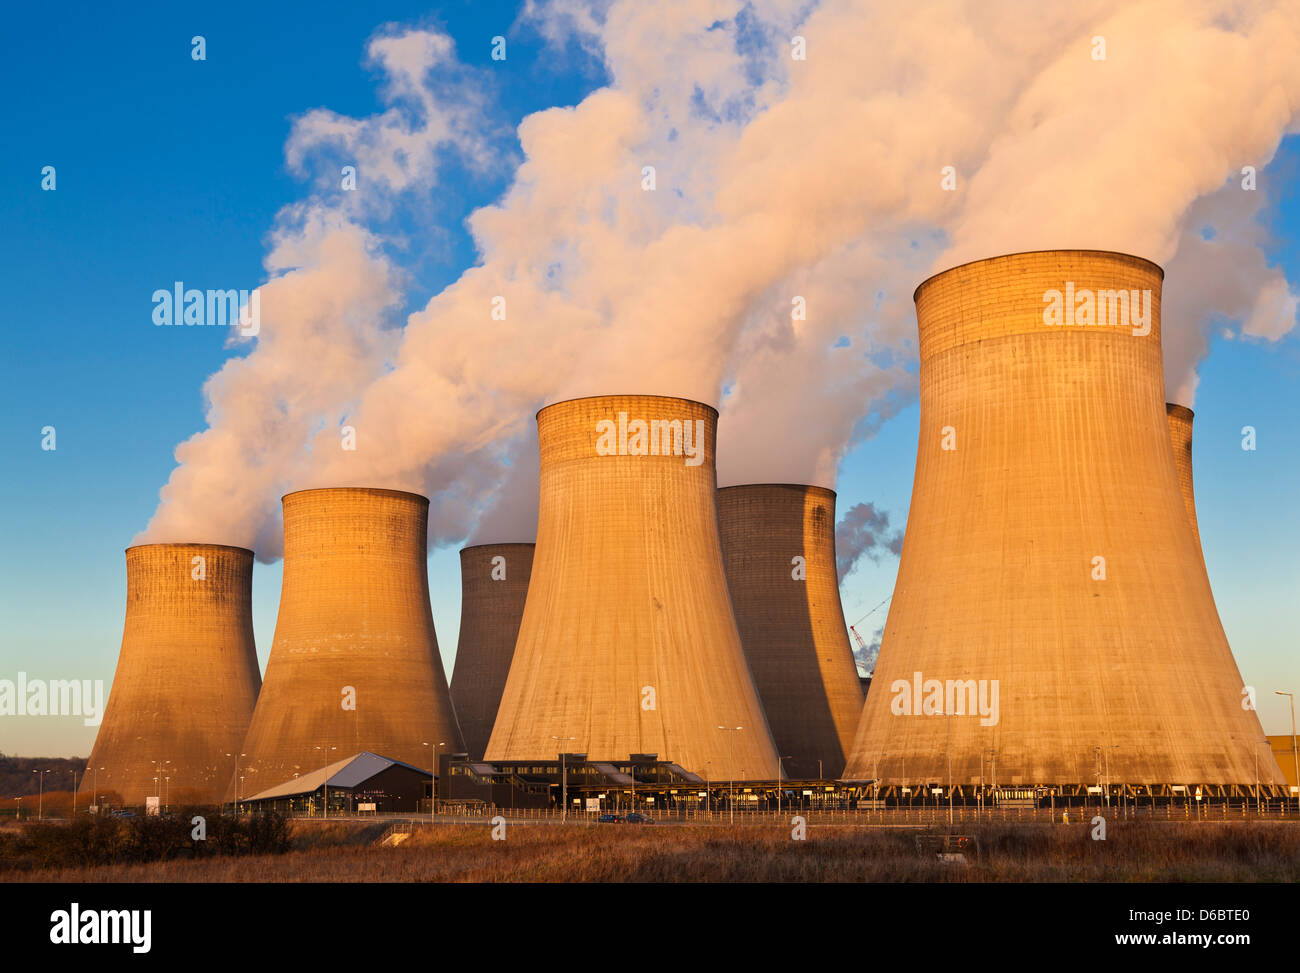 Ratcliffe-on-Soar coal-fired power station Ratcliffe on soar Nottinghamshire England UK GB EU Europe - Stock Image